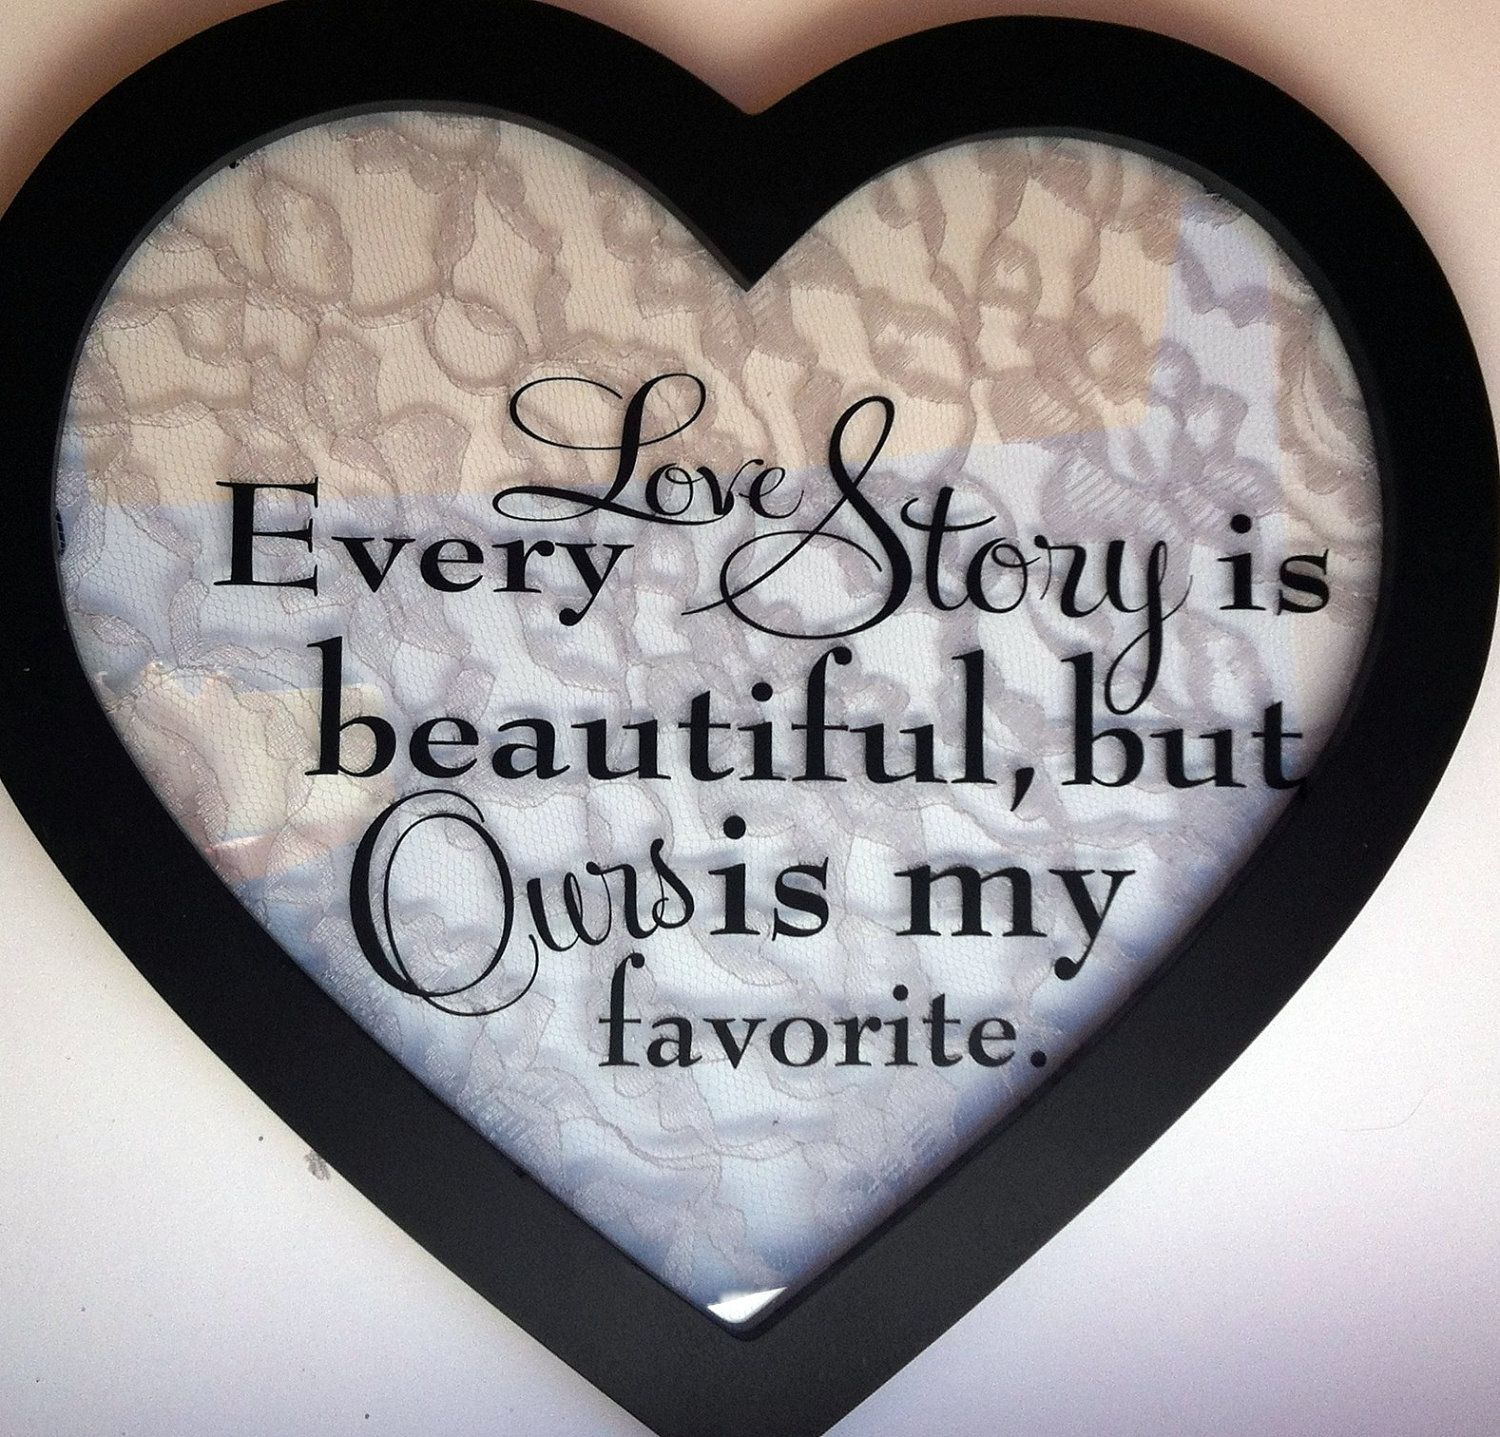 Heart Love Quotes Love Story Quote Wall Decor In Heart Shape Frame$20.00 Via Etsy